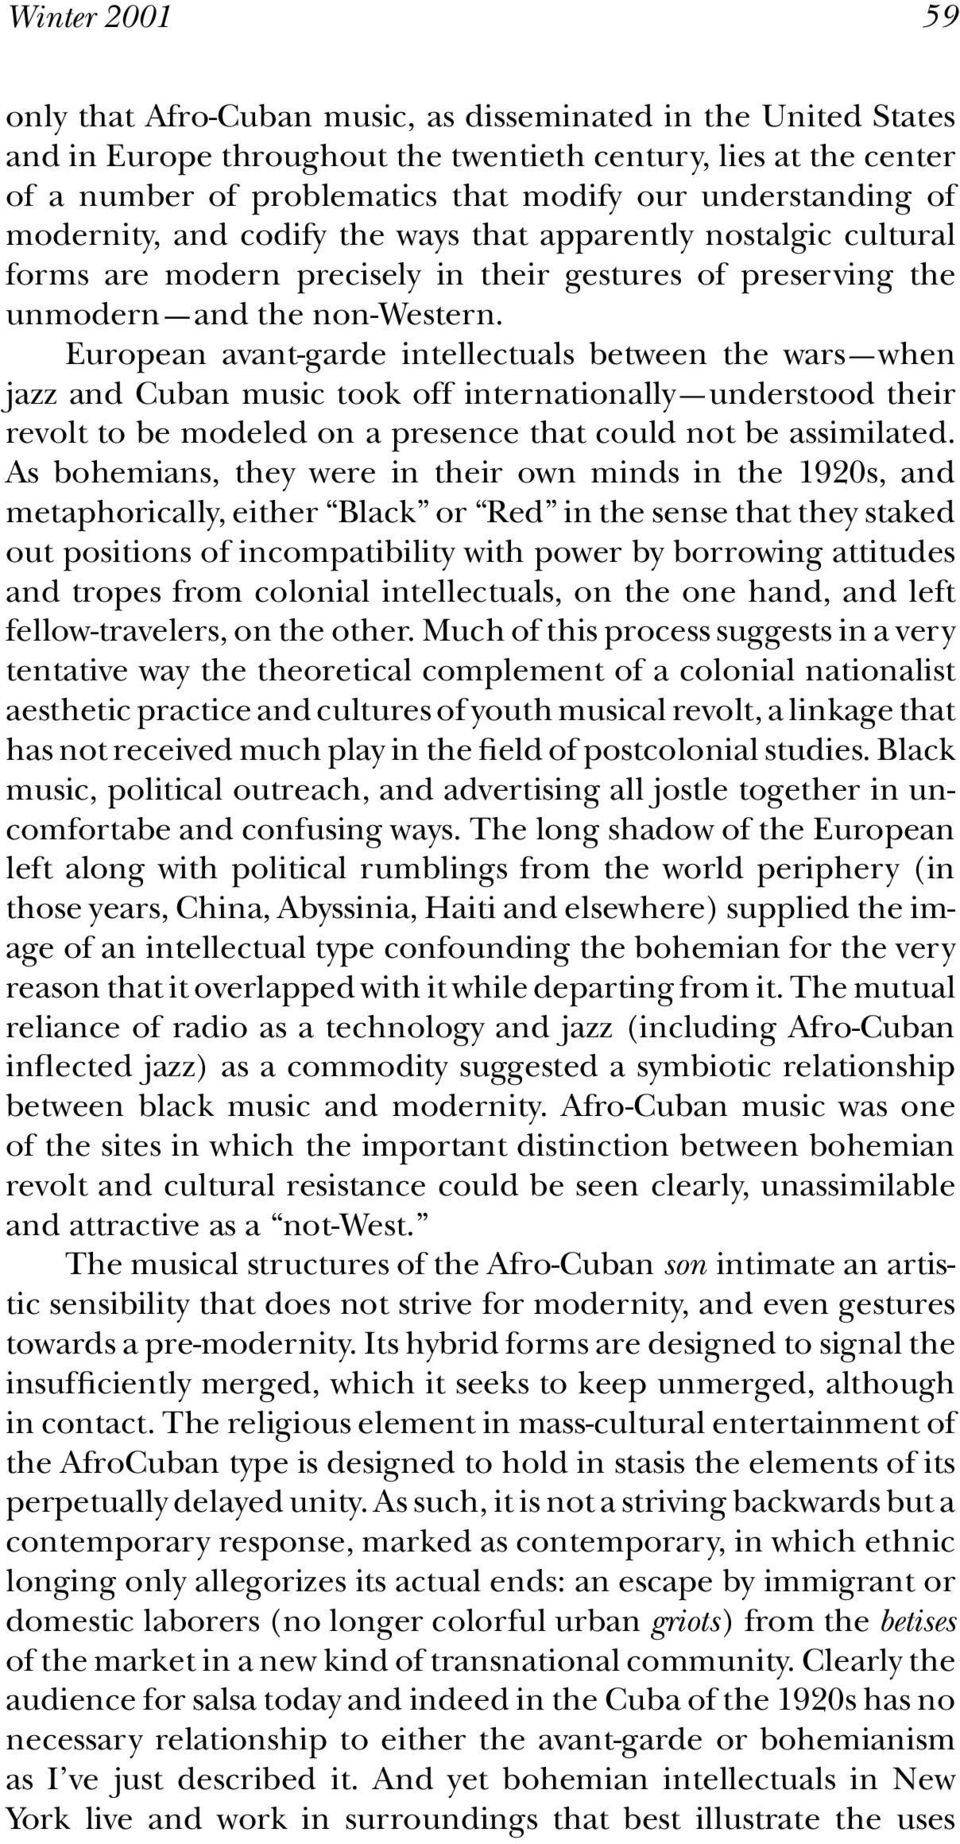 European avant-garde intellectuals between the wars when jazz and Cuban music took off internationally understood their revolt to be modeled on a presence that could not be assimilated.